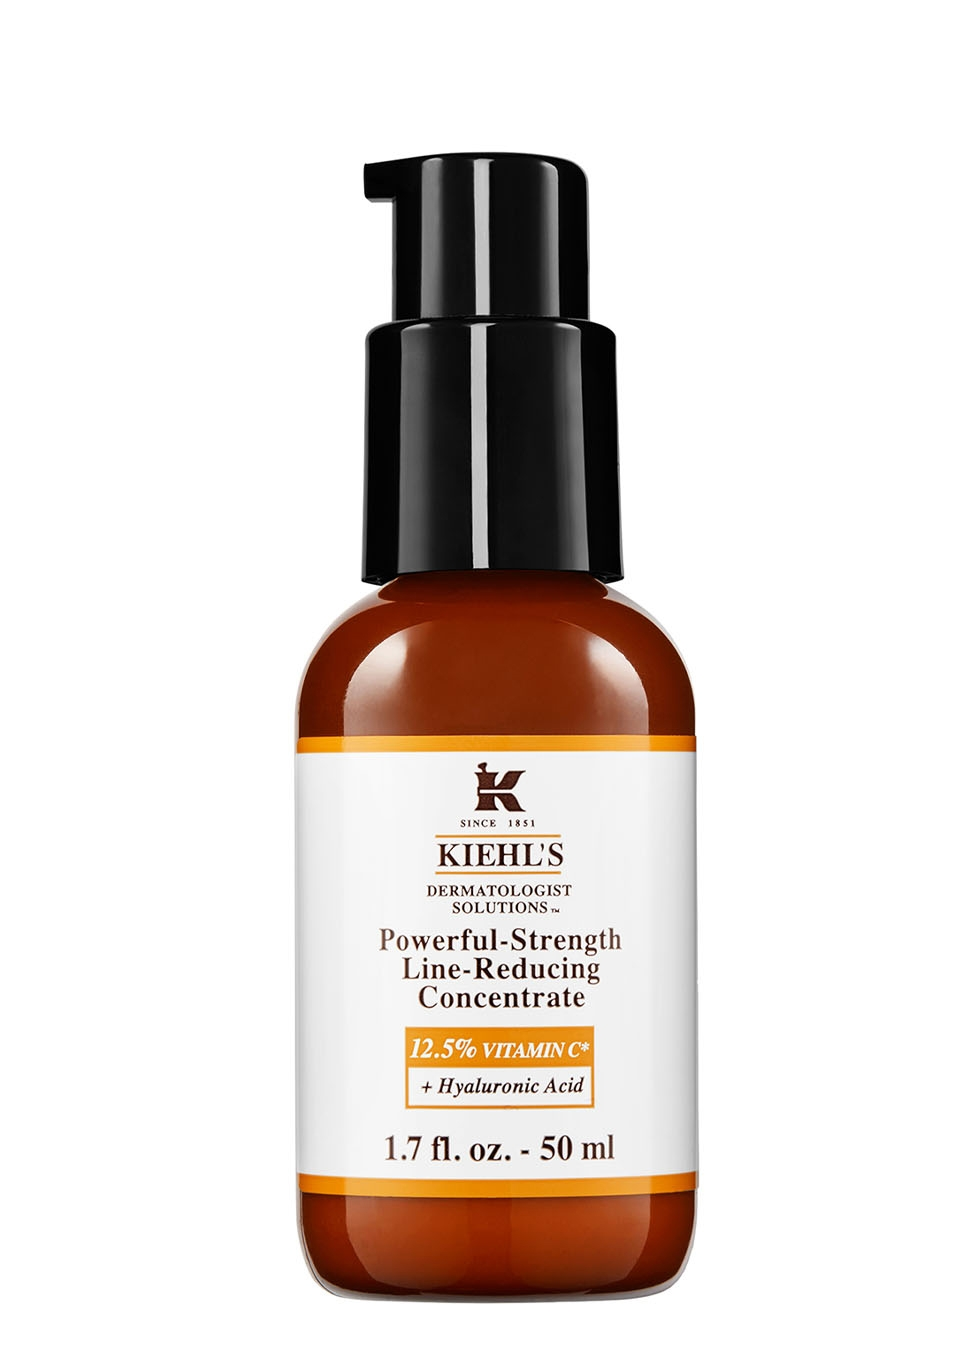 Powerful-Strength Line-Reducing Concentrate 50ml